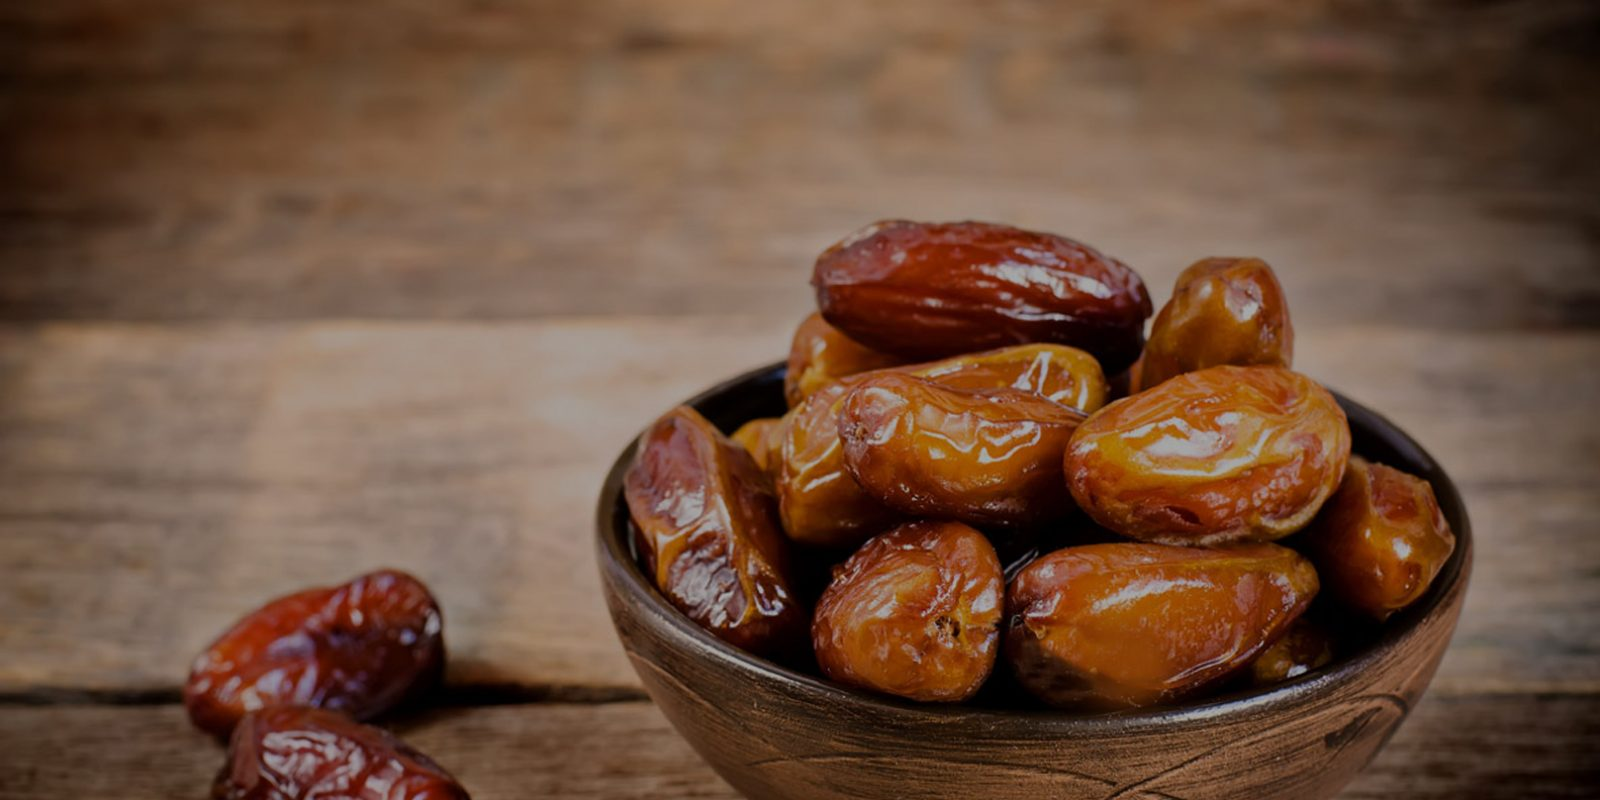 WE PROVIDE HIGHEST DATES QUALITY